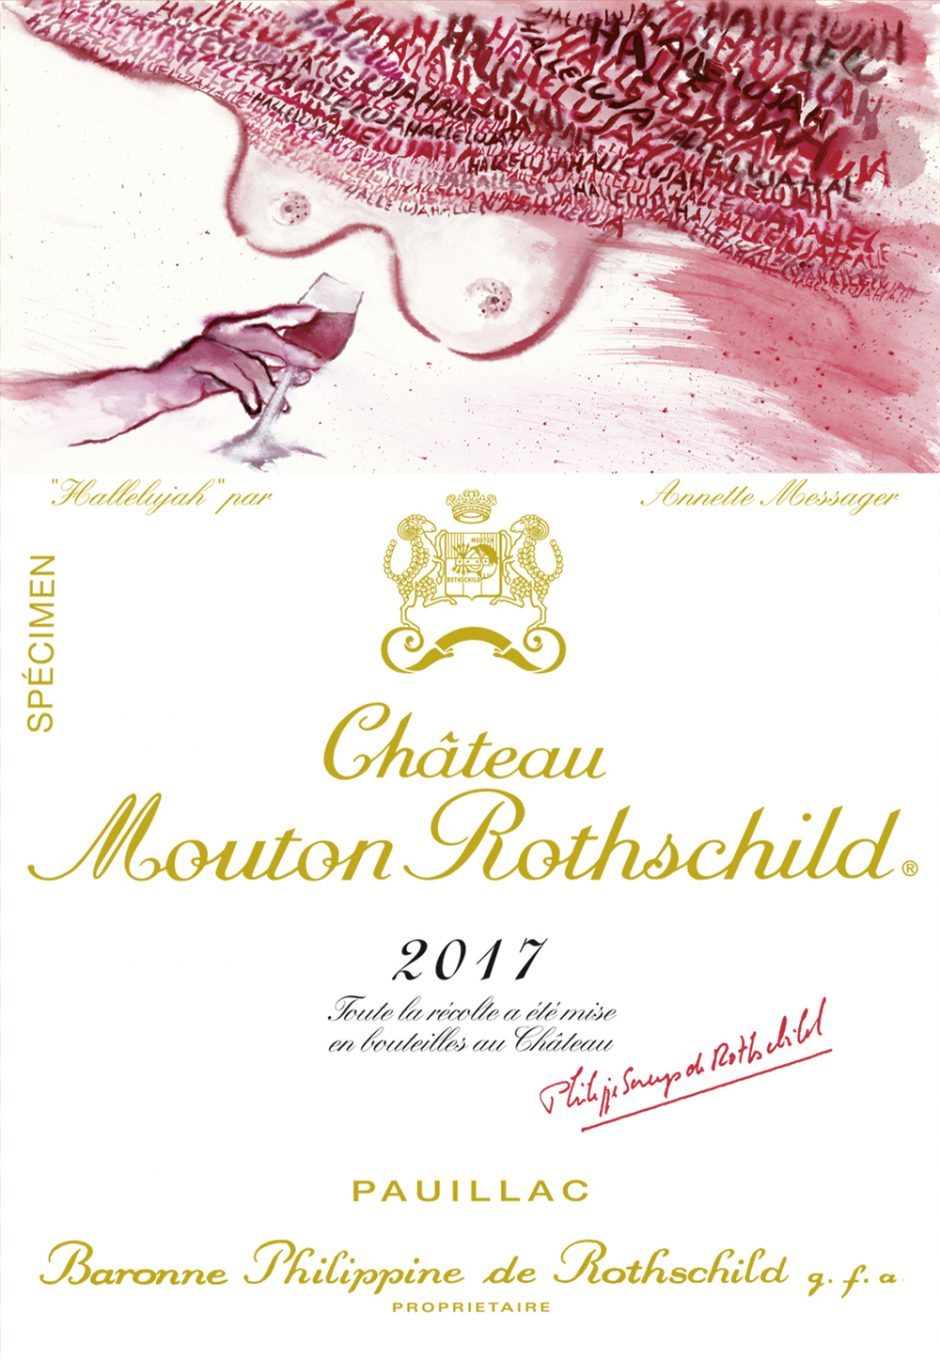 Mouton Rothschild 2017 Label